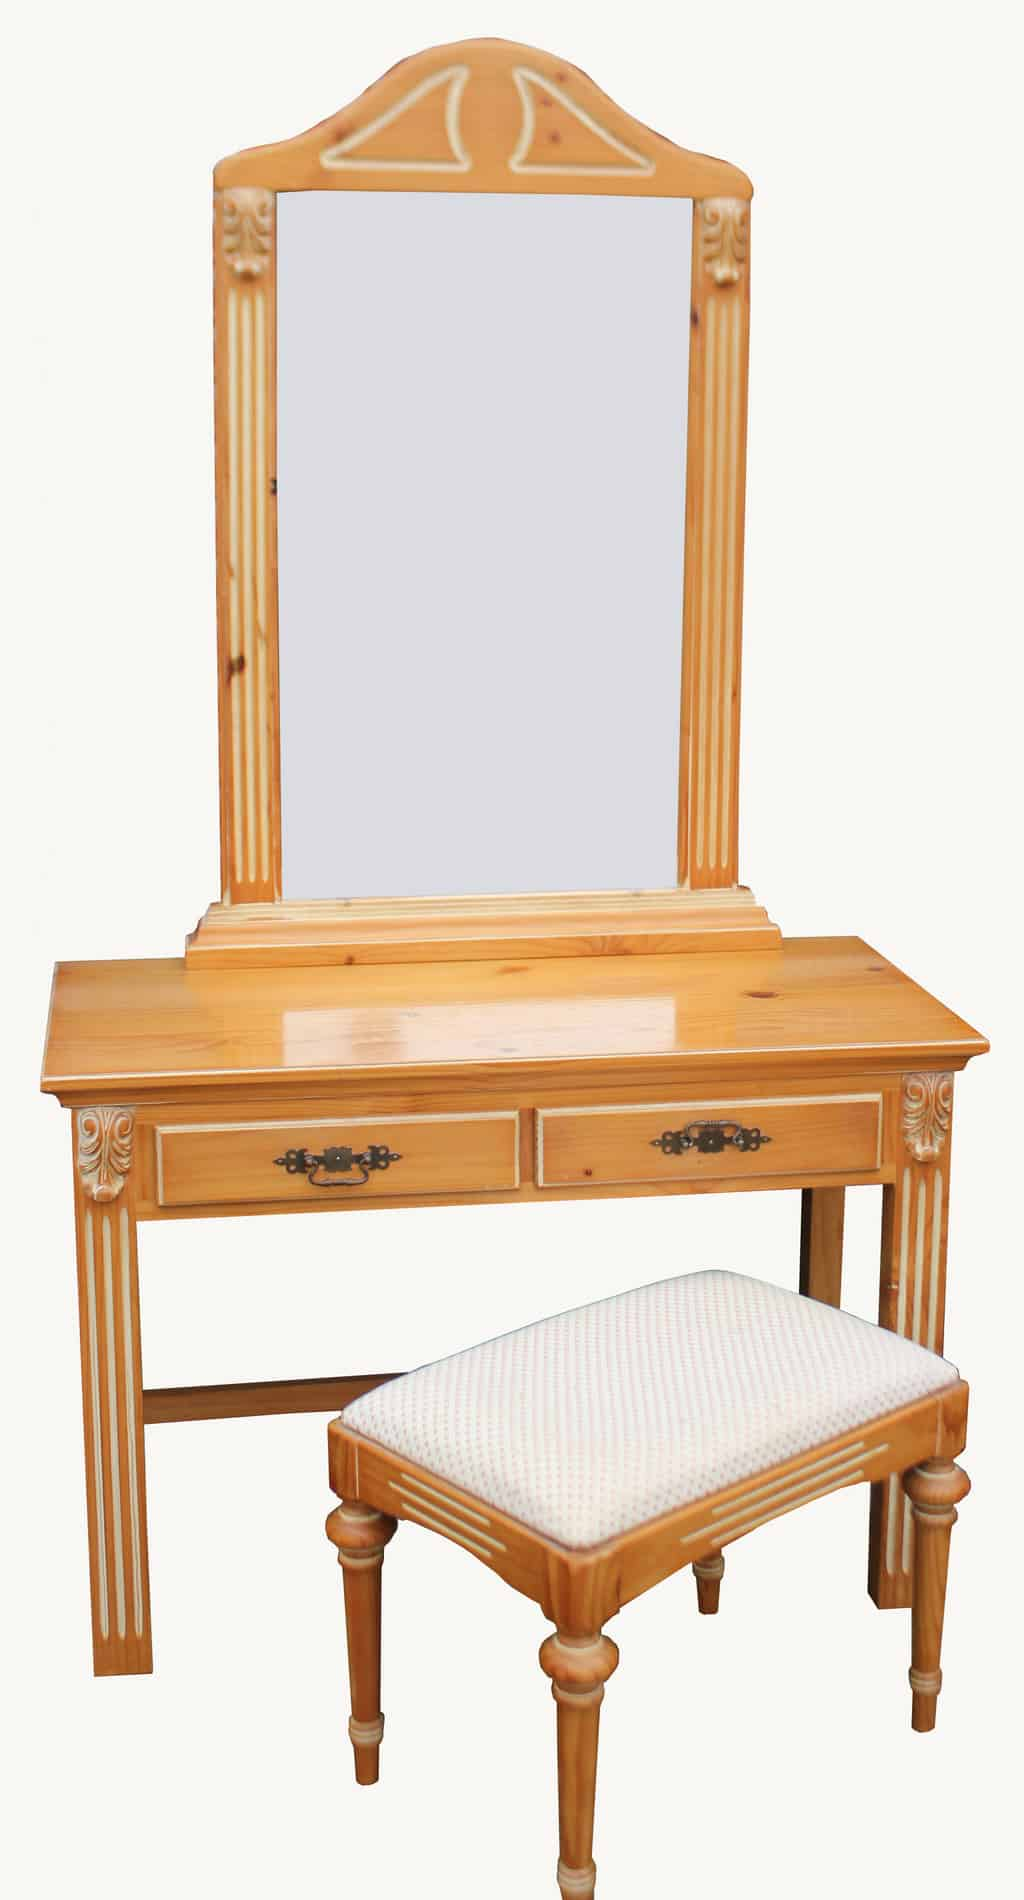 Dressing Table With Mirror And Stool: A Spanish Pine Dressing Table, Mirror And Stool